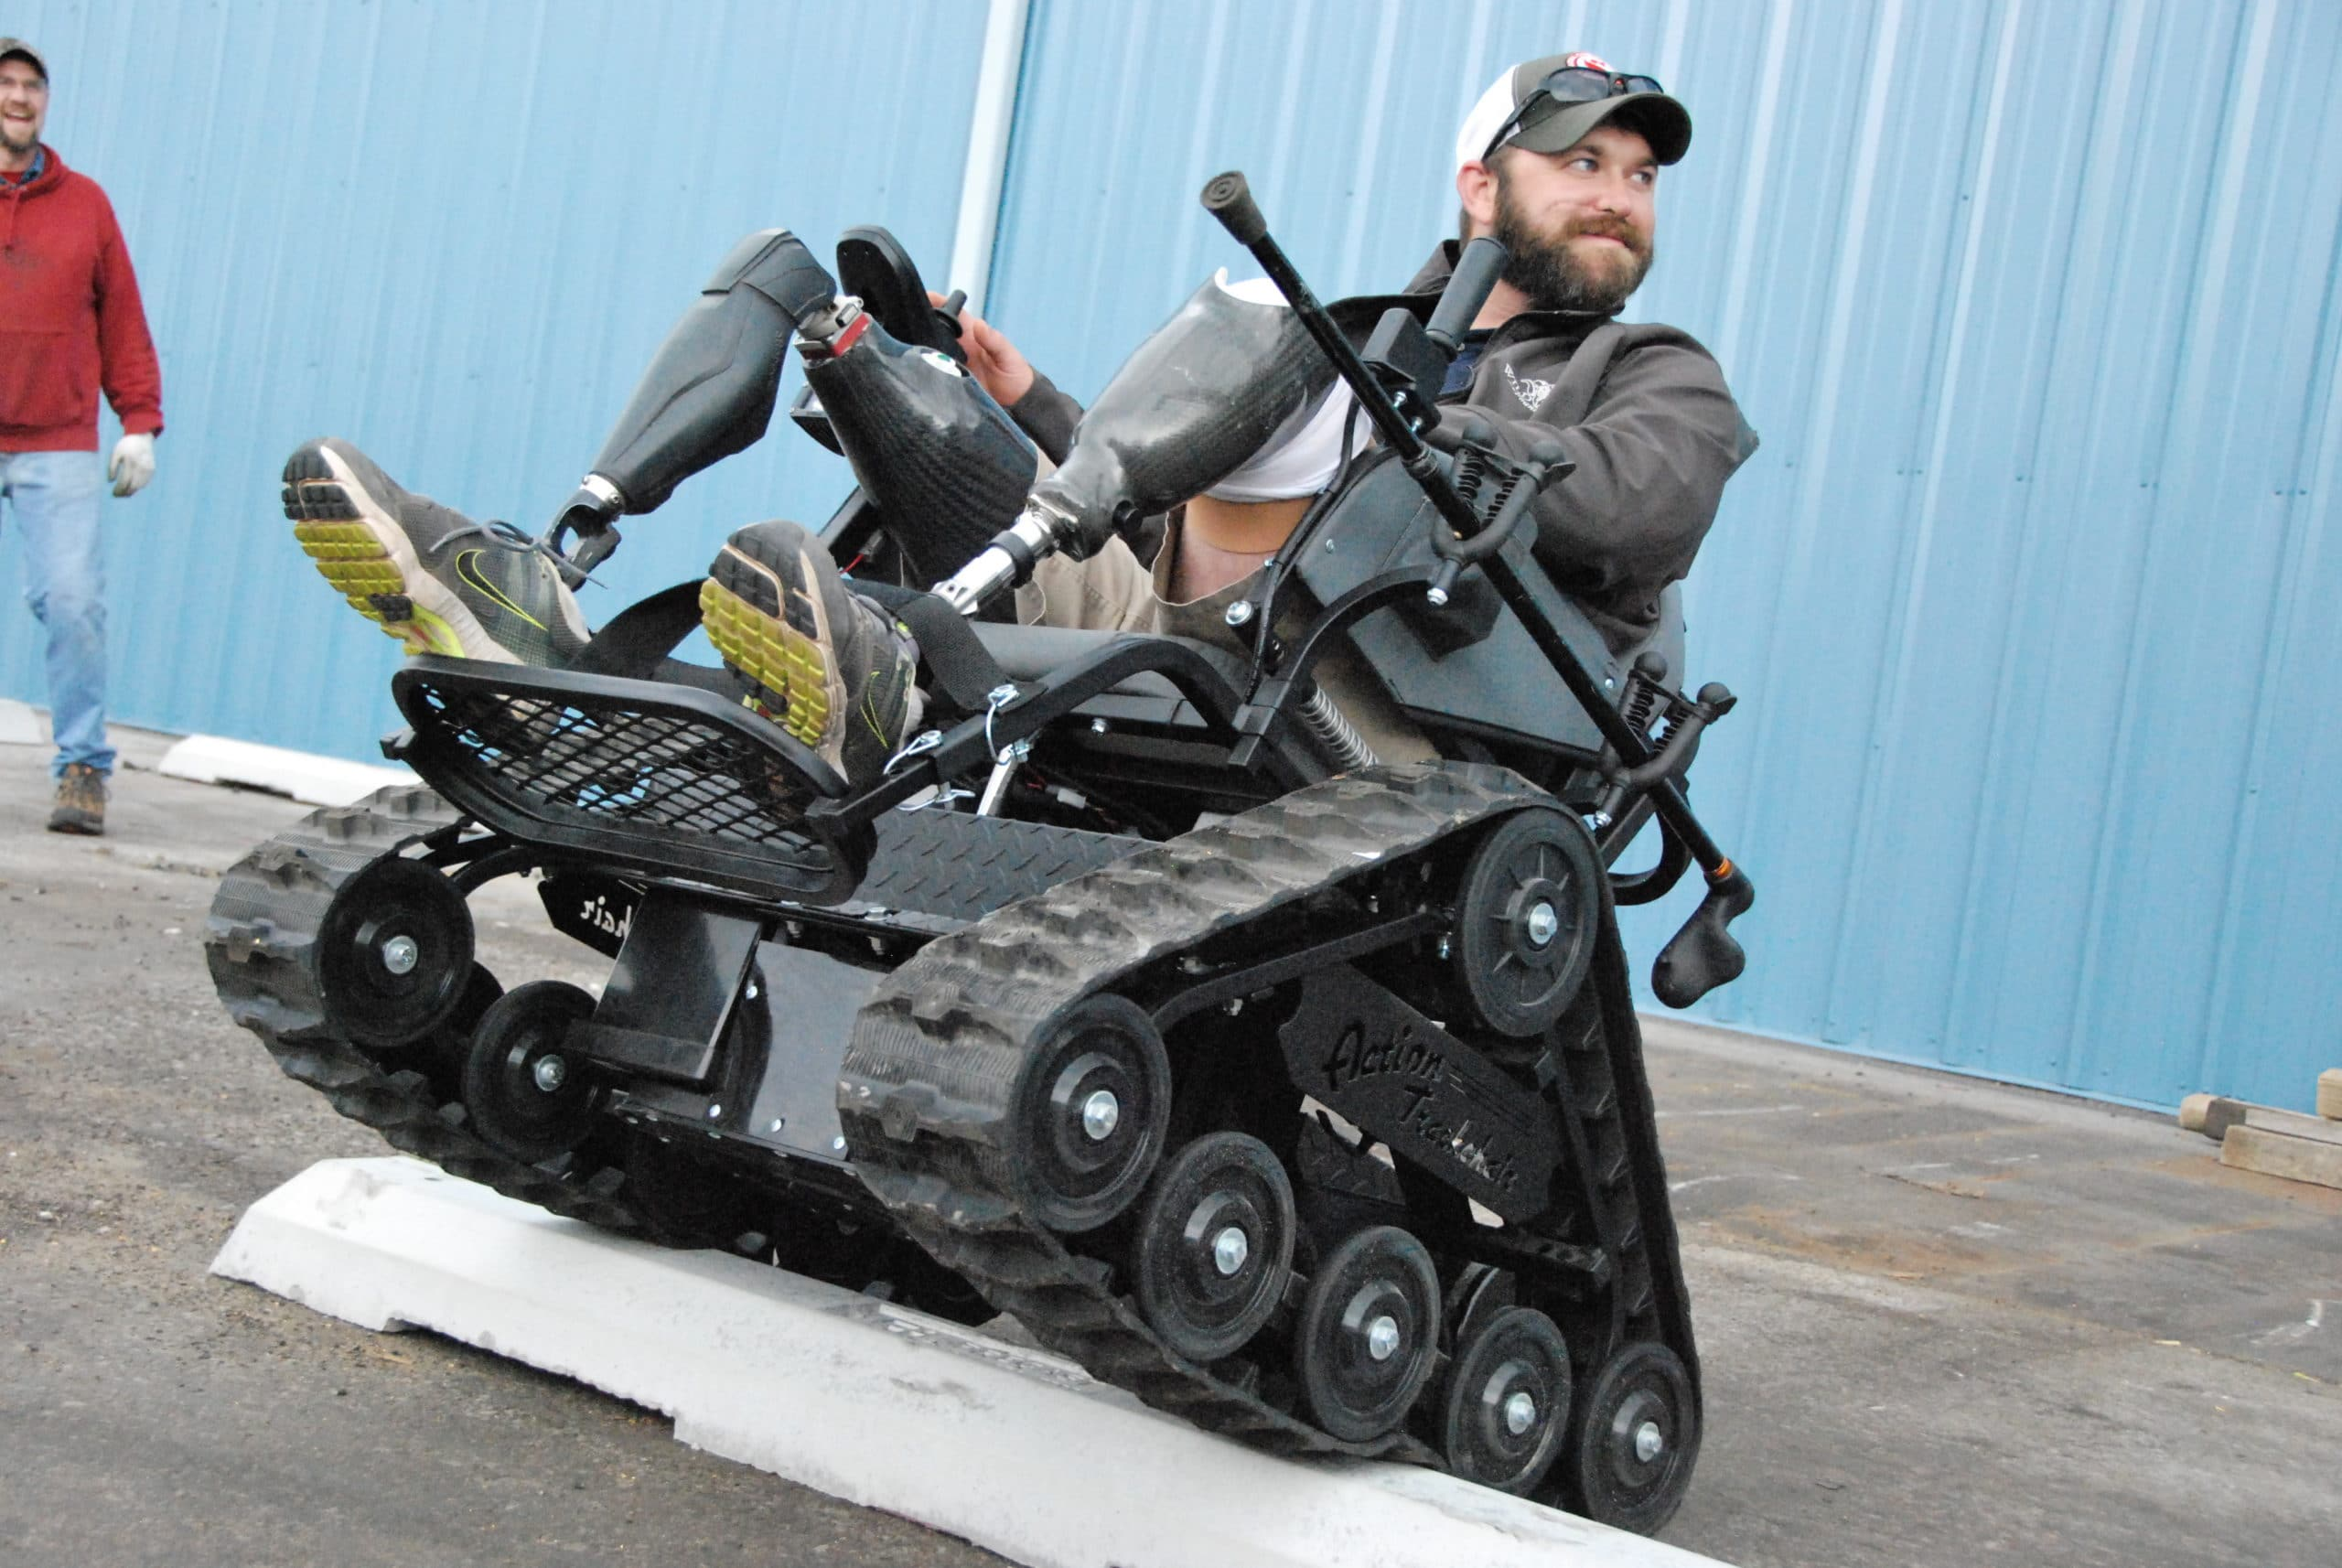 Matt Amos negotiates an obstacle after receiving a trackchair from Freedom Alliance.